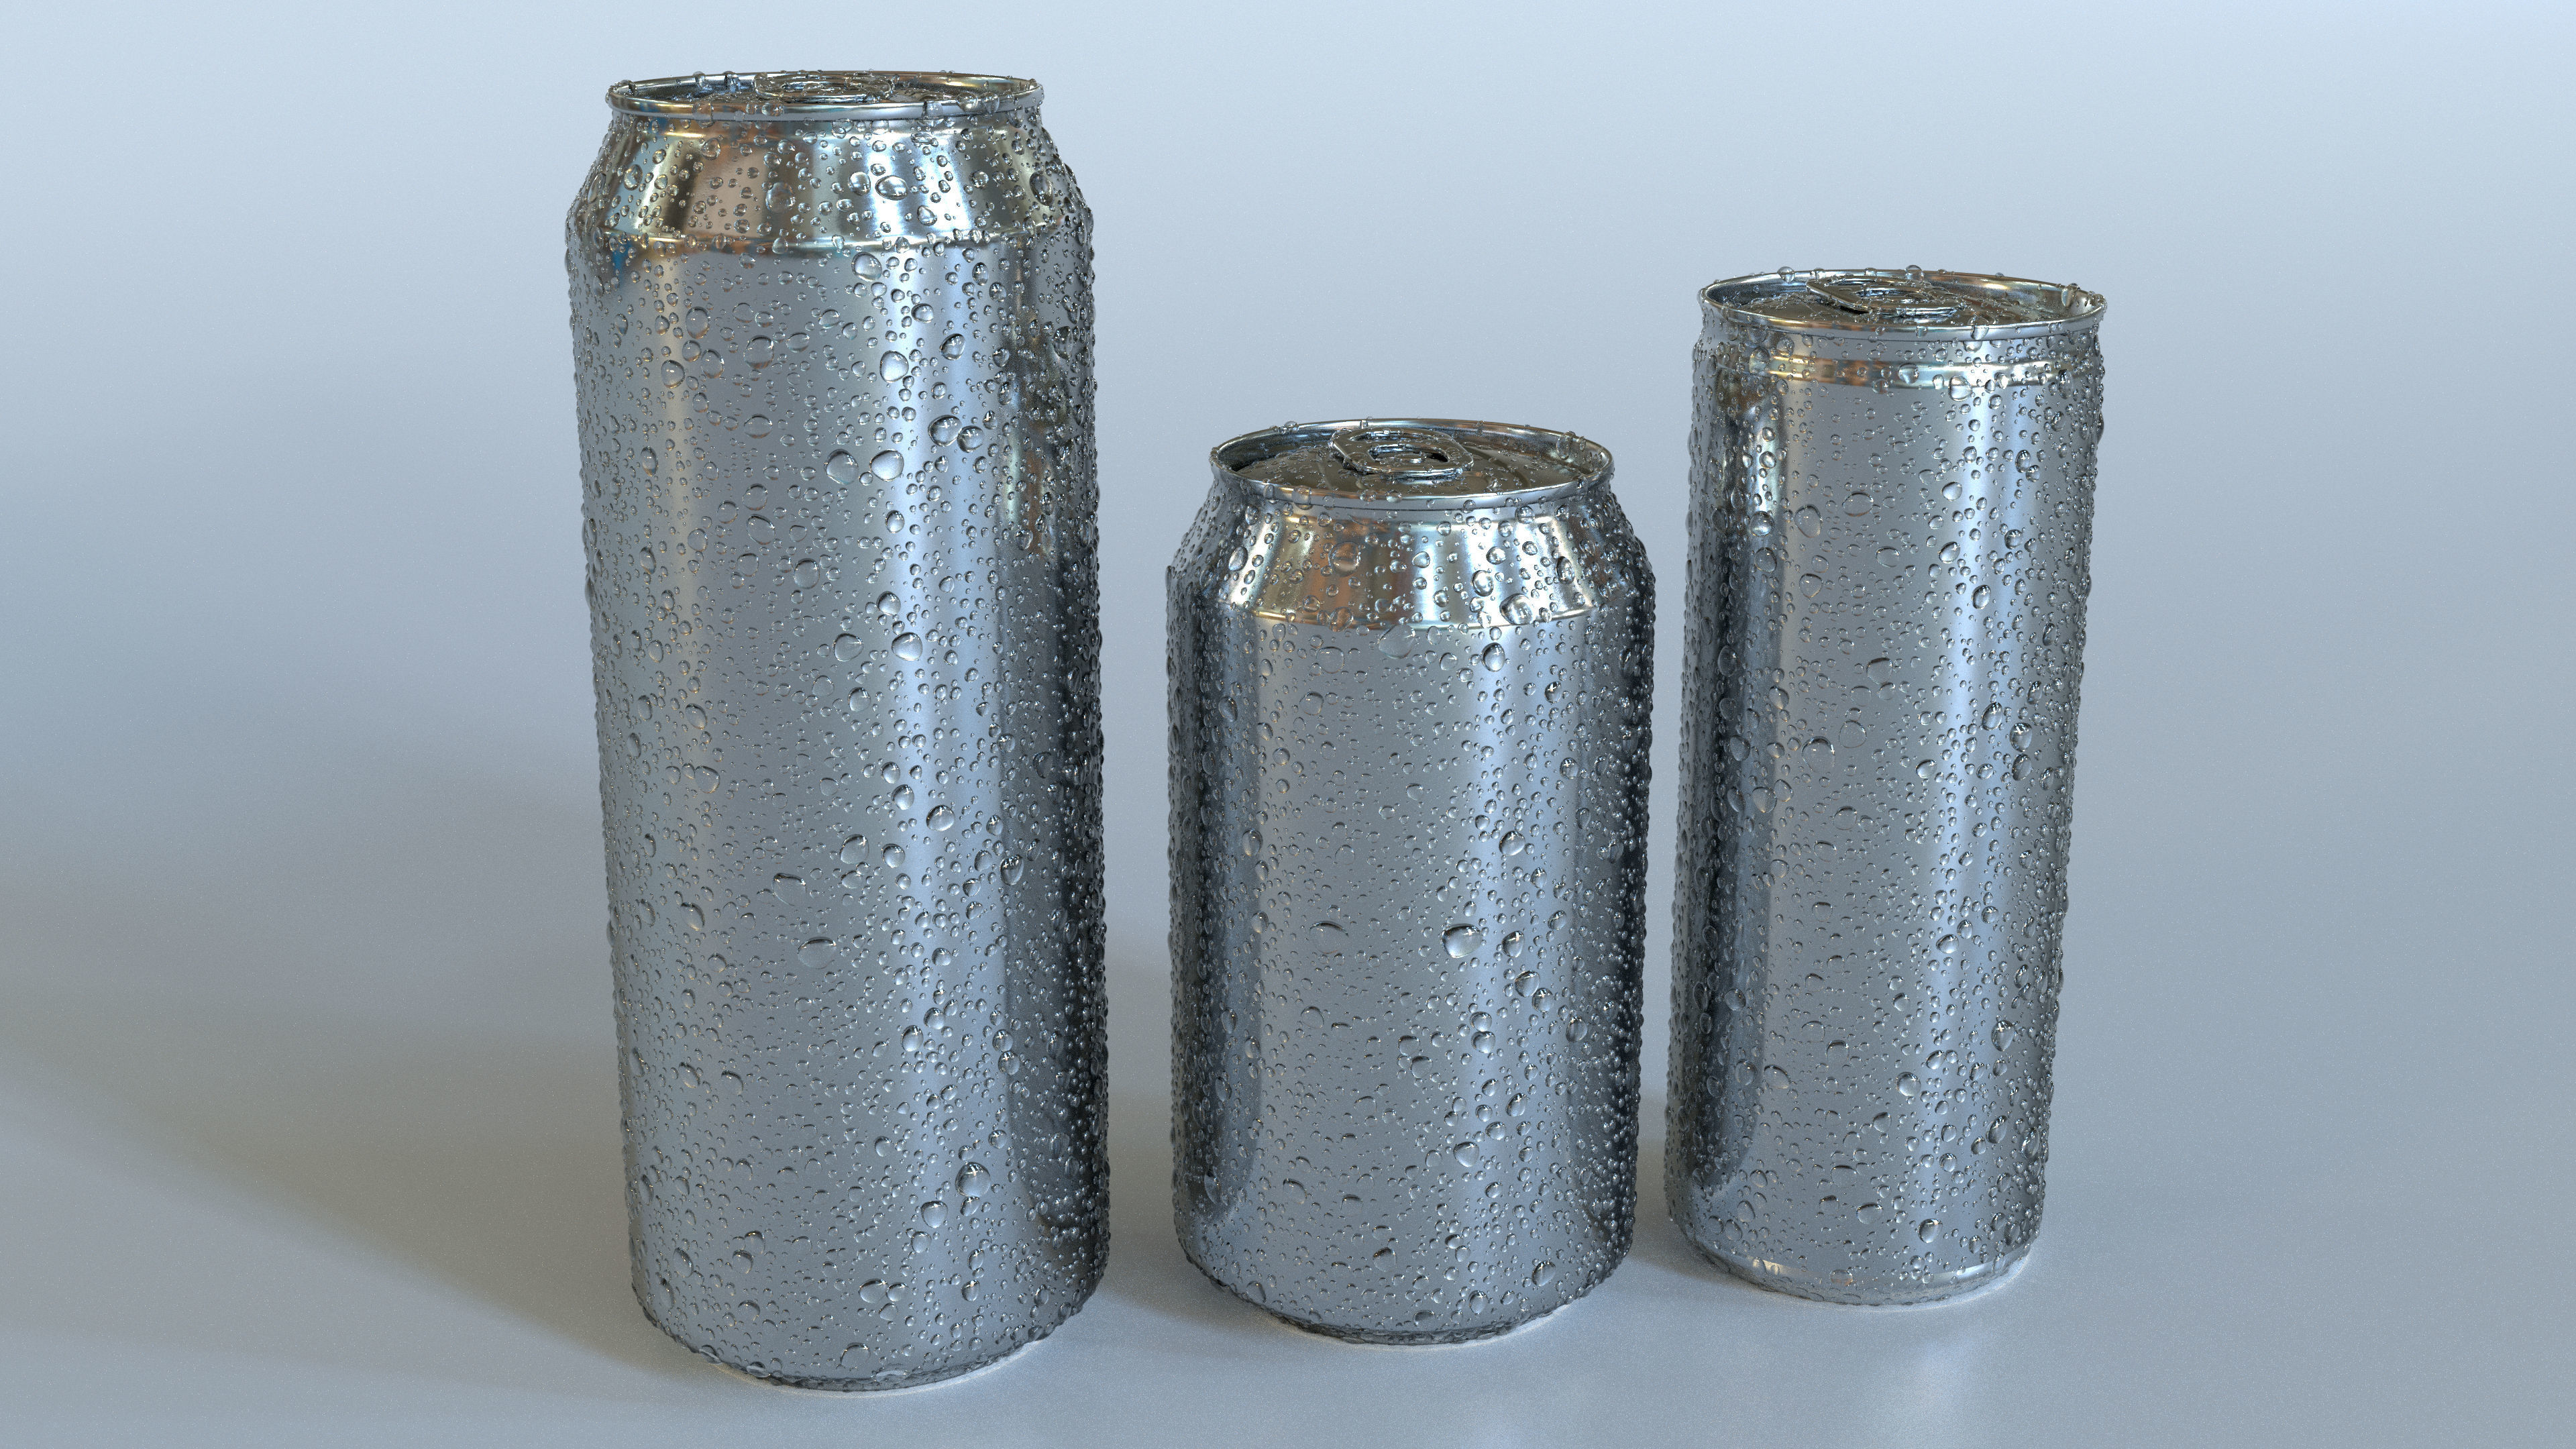 3D Beverage Can Wet - 3DS Max and CORONA RENDER